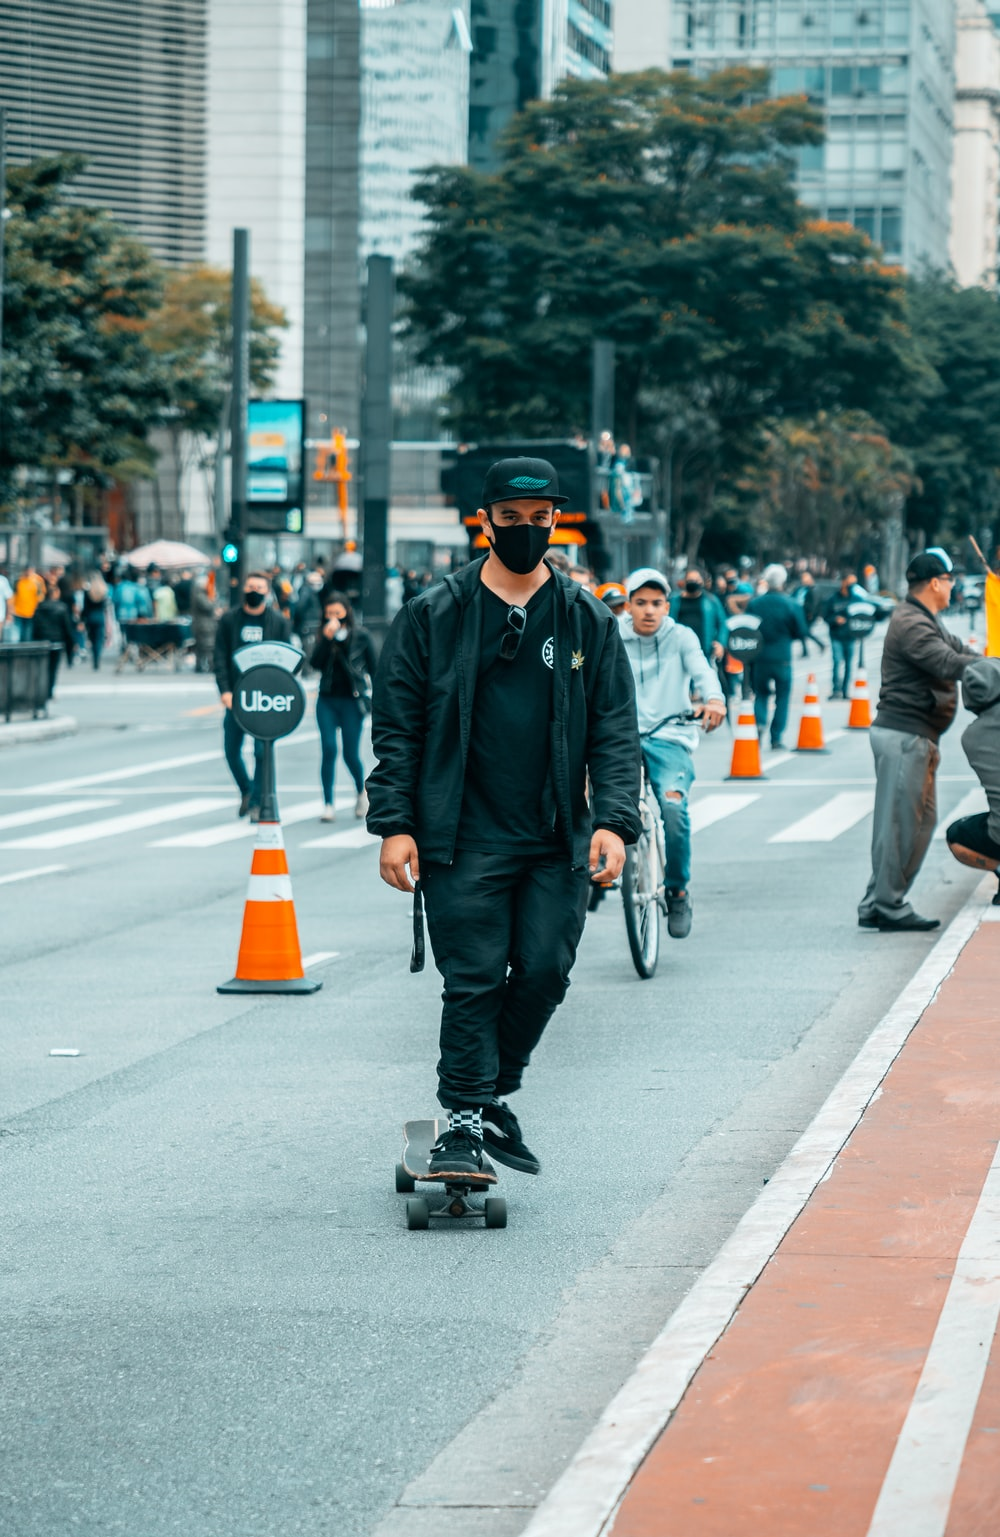 man in black jacket and black cap riding on black kick scooter on gray concrete road